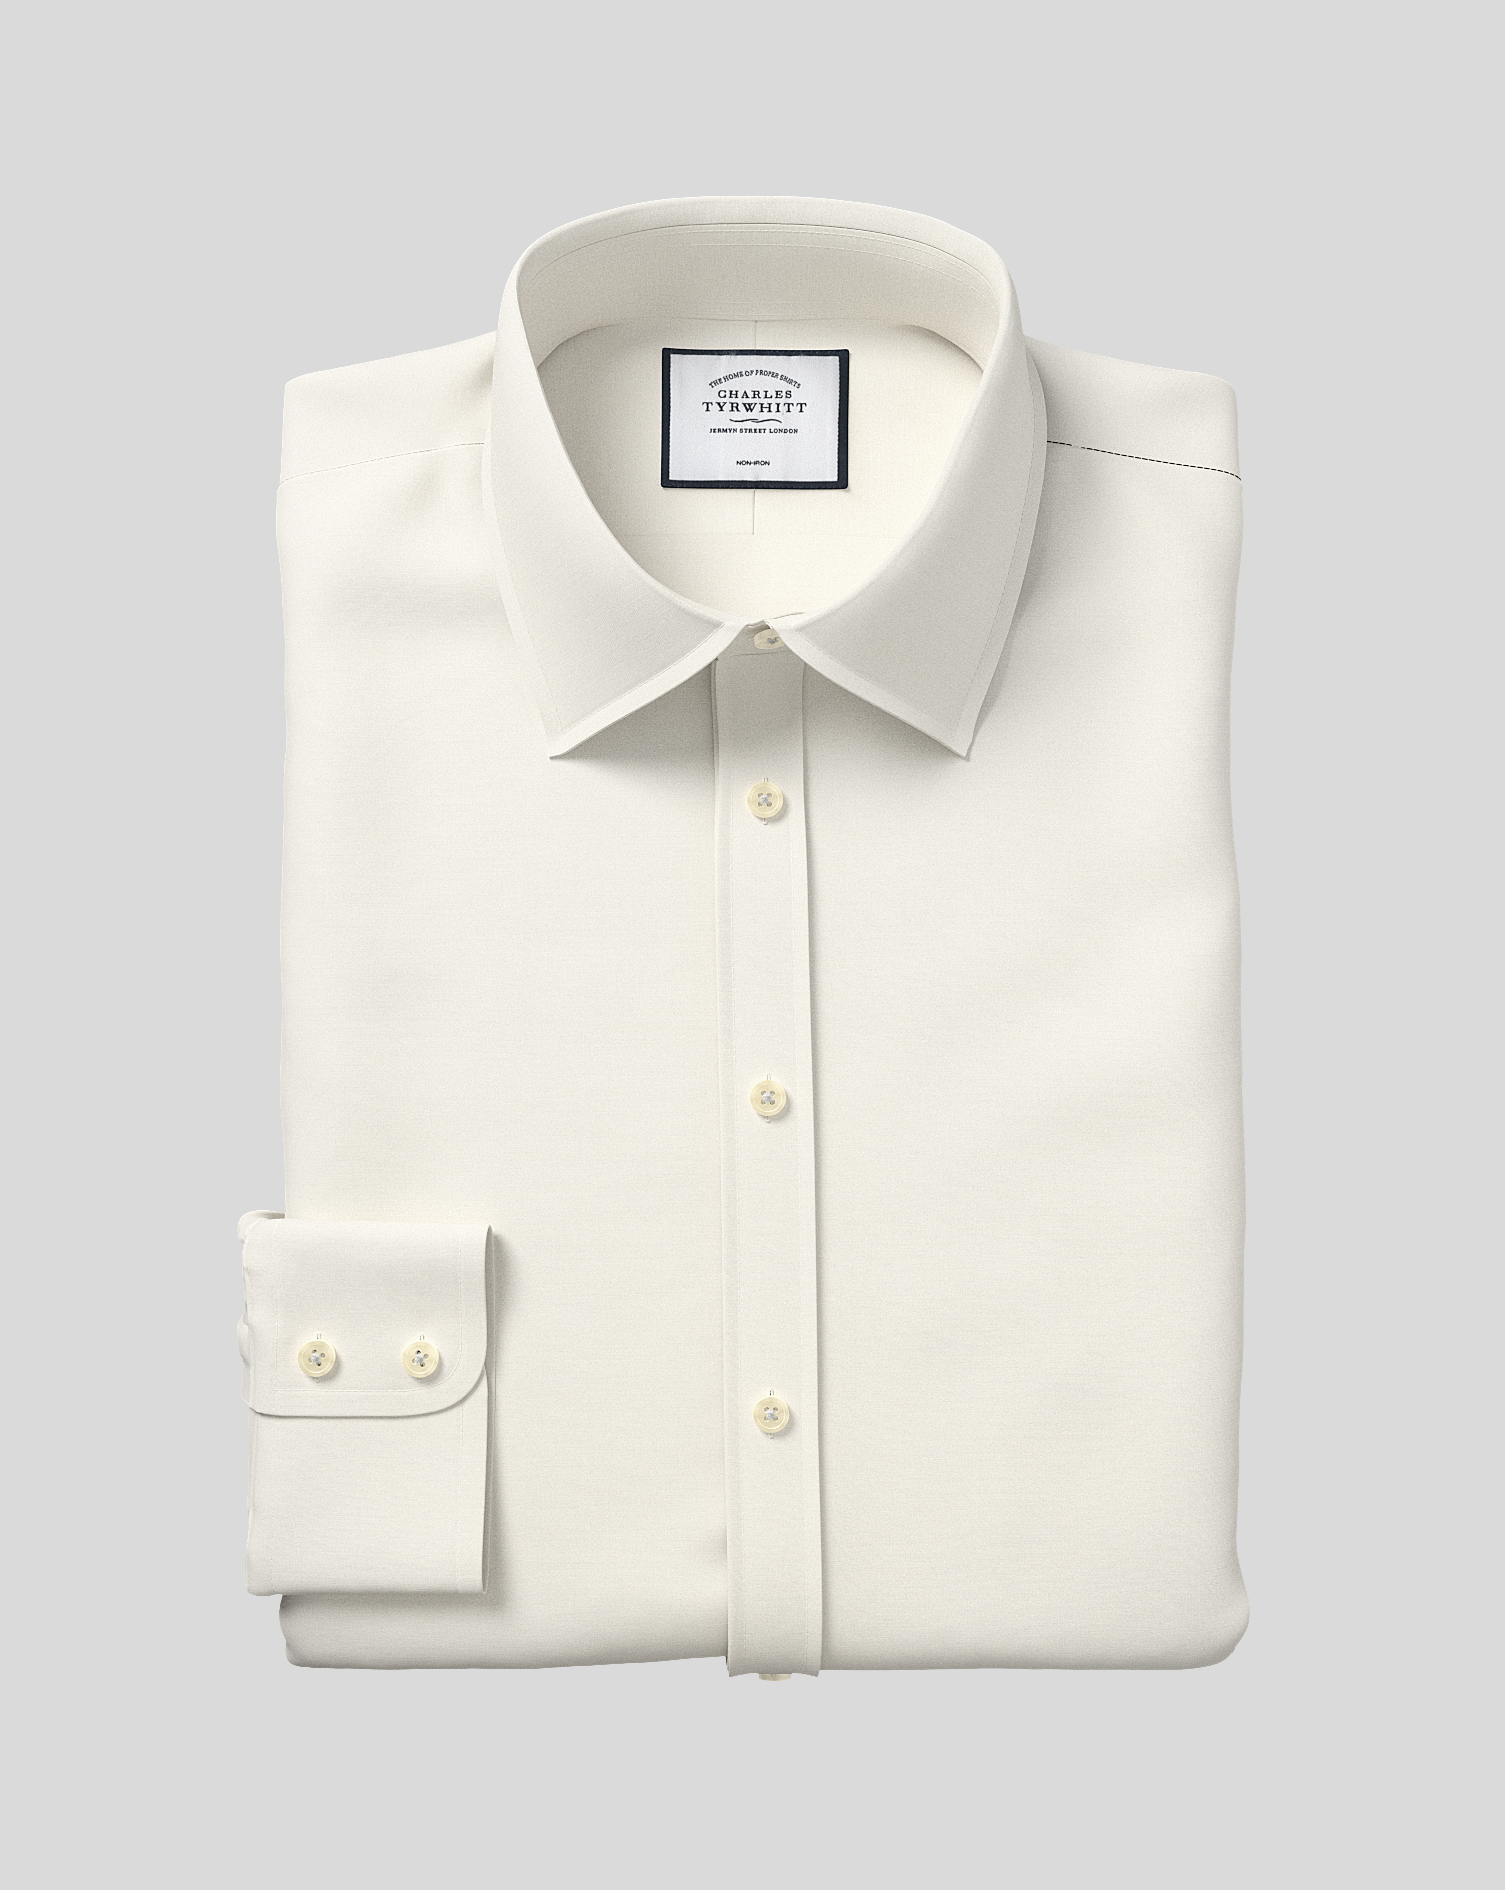 Classic Fit Cream Non-Iron Poplin Cotton Formal Shirt Double Cuff Size 17/35 by Charles Tyrwhitt